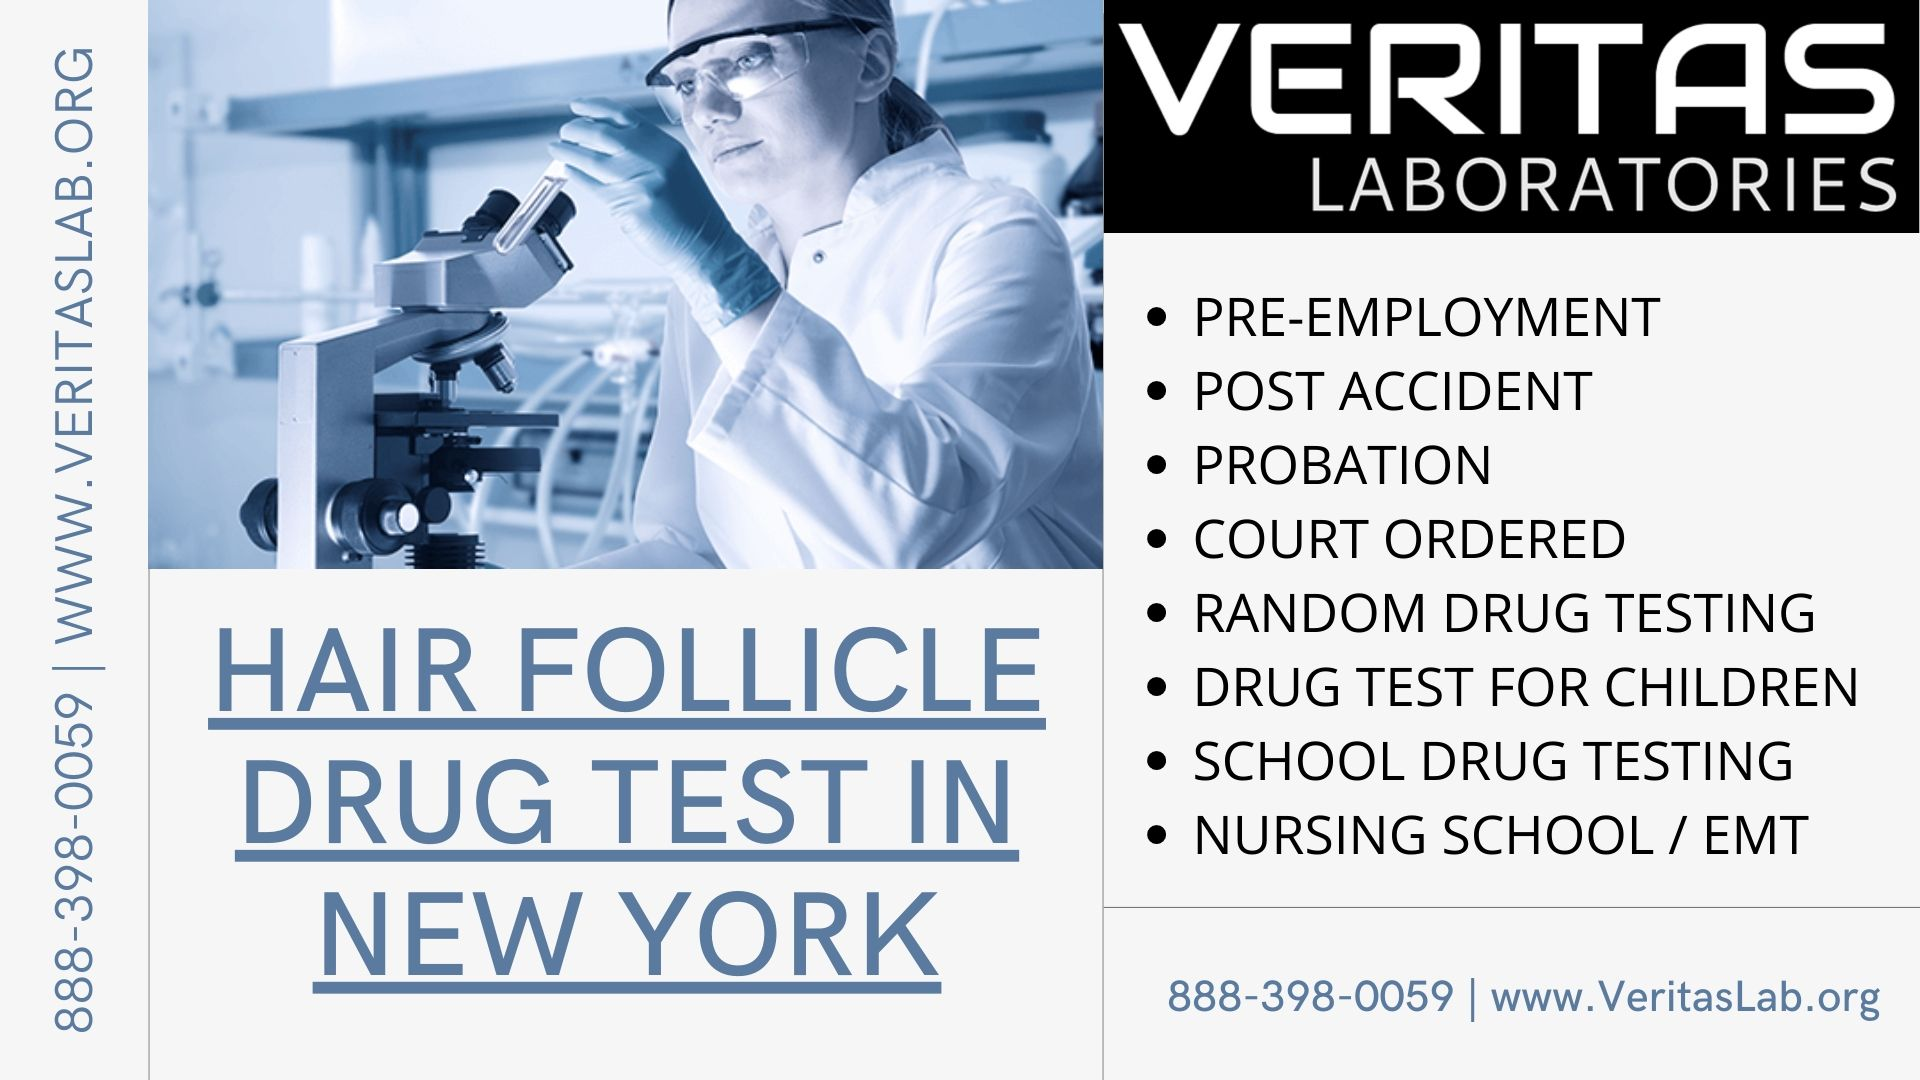 HAIR FOLLICLE DRUG TEST IN NEW YORK ALCOHOL ETG PETH BLOOD TEST EXPLAINED FAQ VERITAS LAB